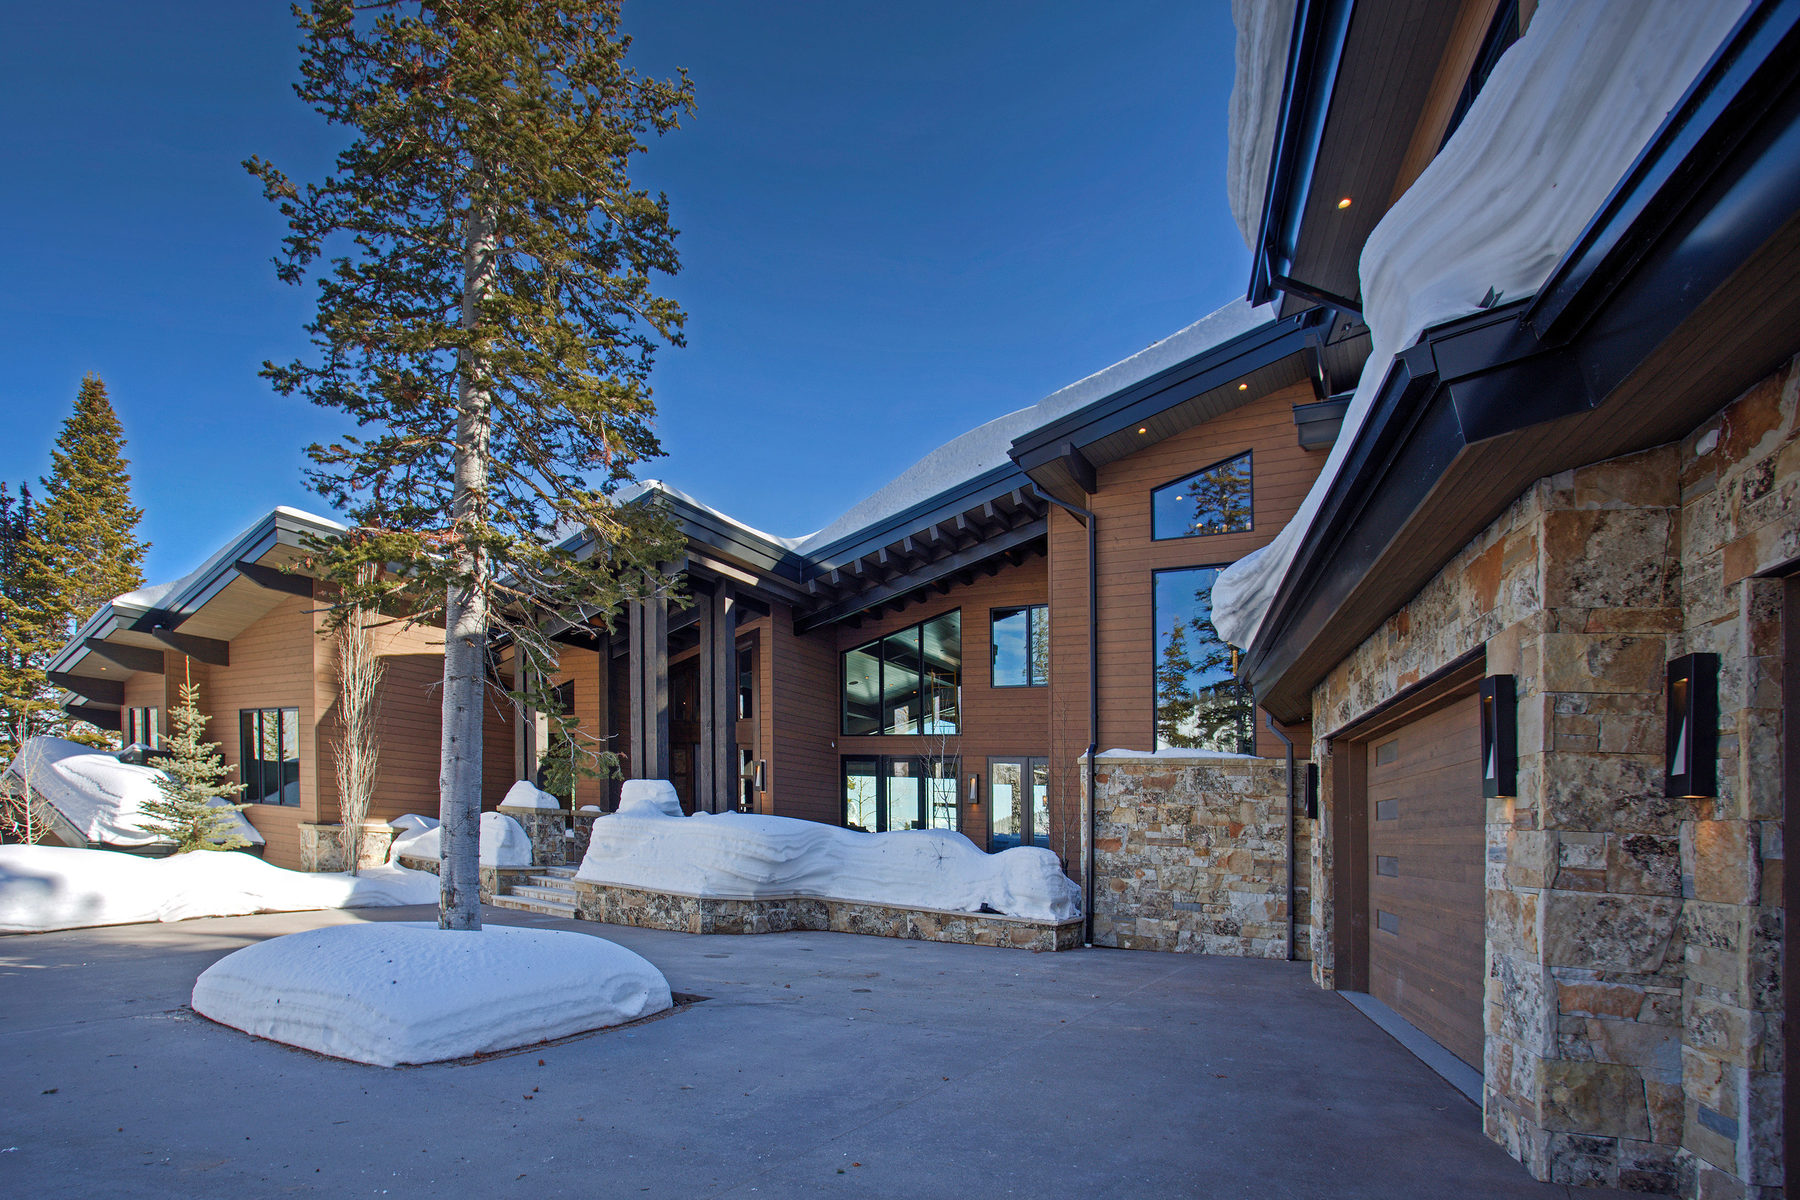 Single Family Home for Sale at Don't miss this incredible opportunity to own one of the finest homes ever built 109 White Pine Canyon Rd Park City, Utah, 84060 United States